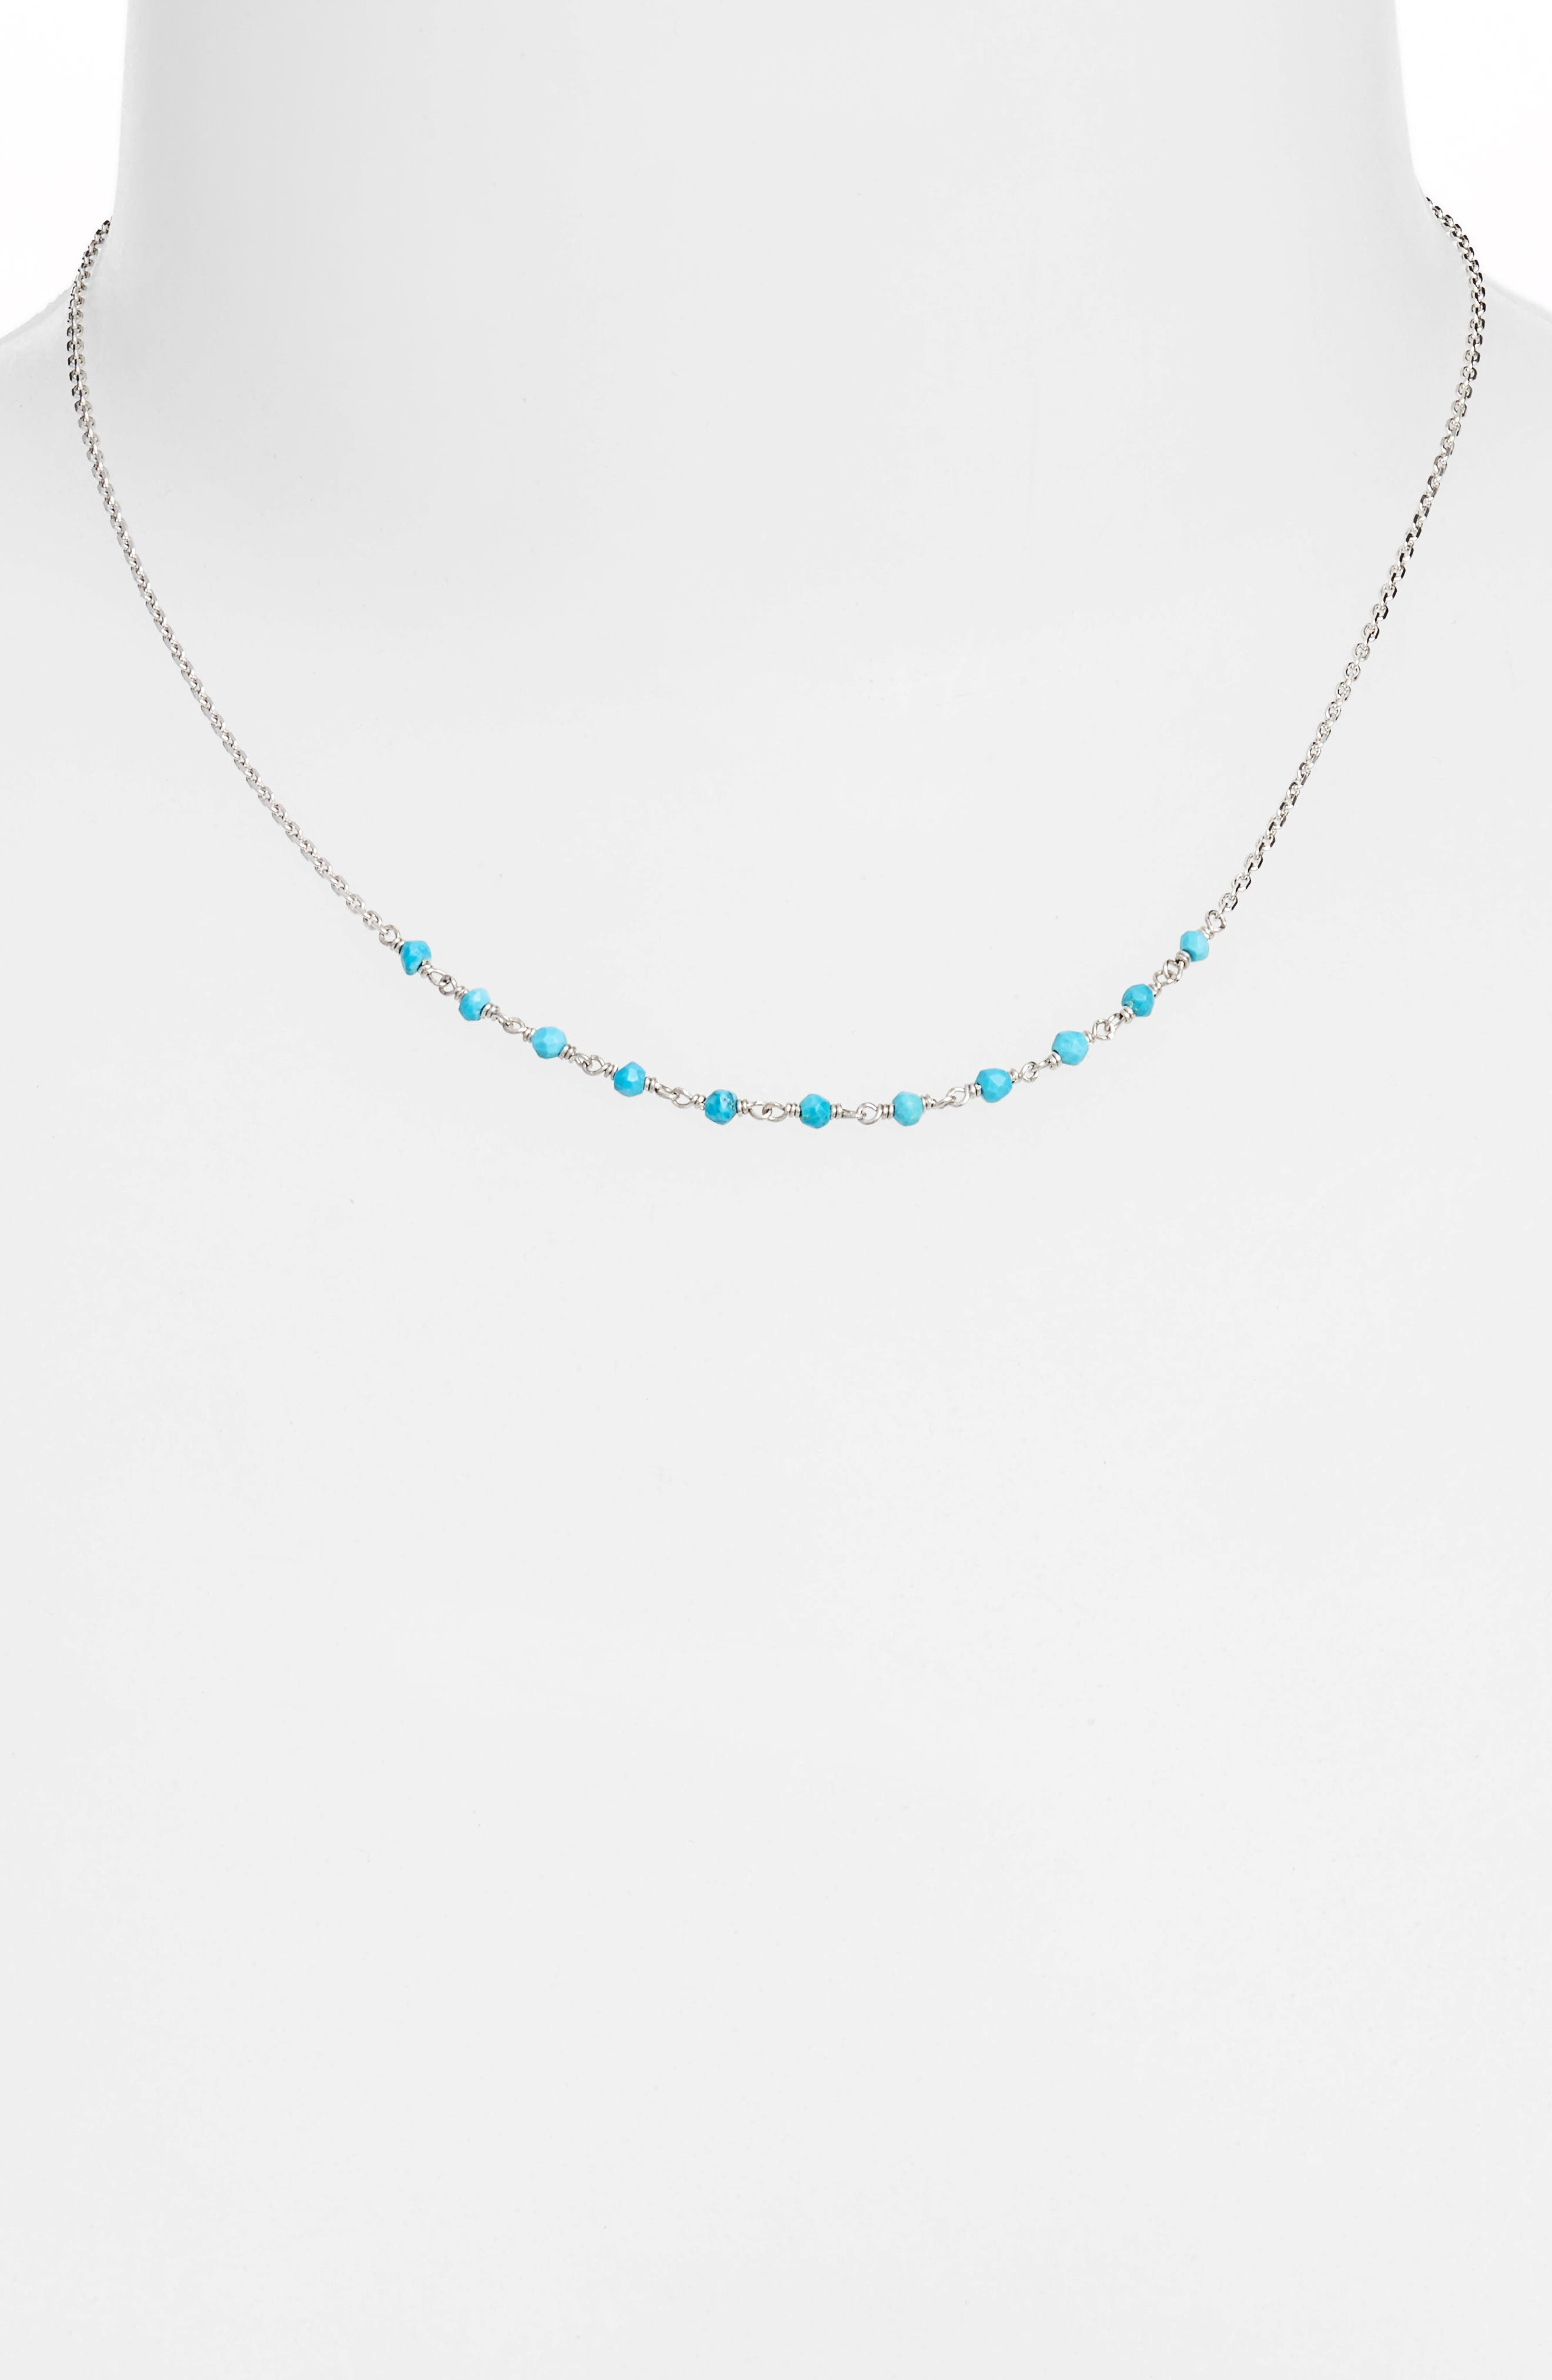 Lapis Collar Necklace,                             Alternate thumbnail 2, color,                             SILVER/ TURQUOISE